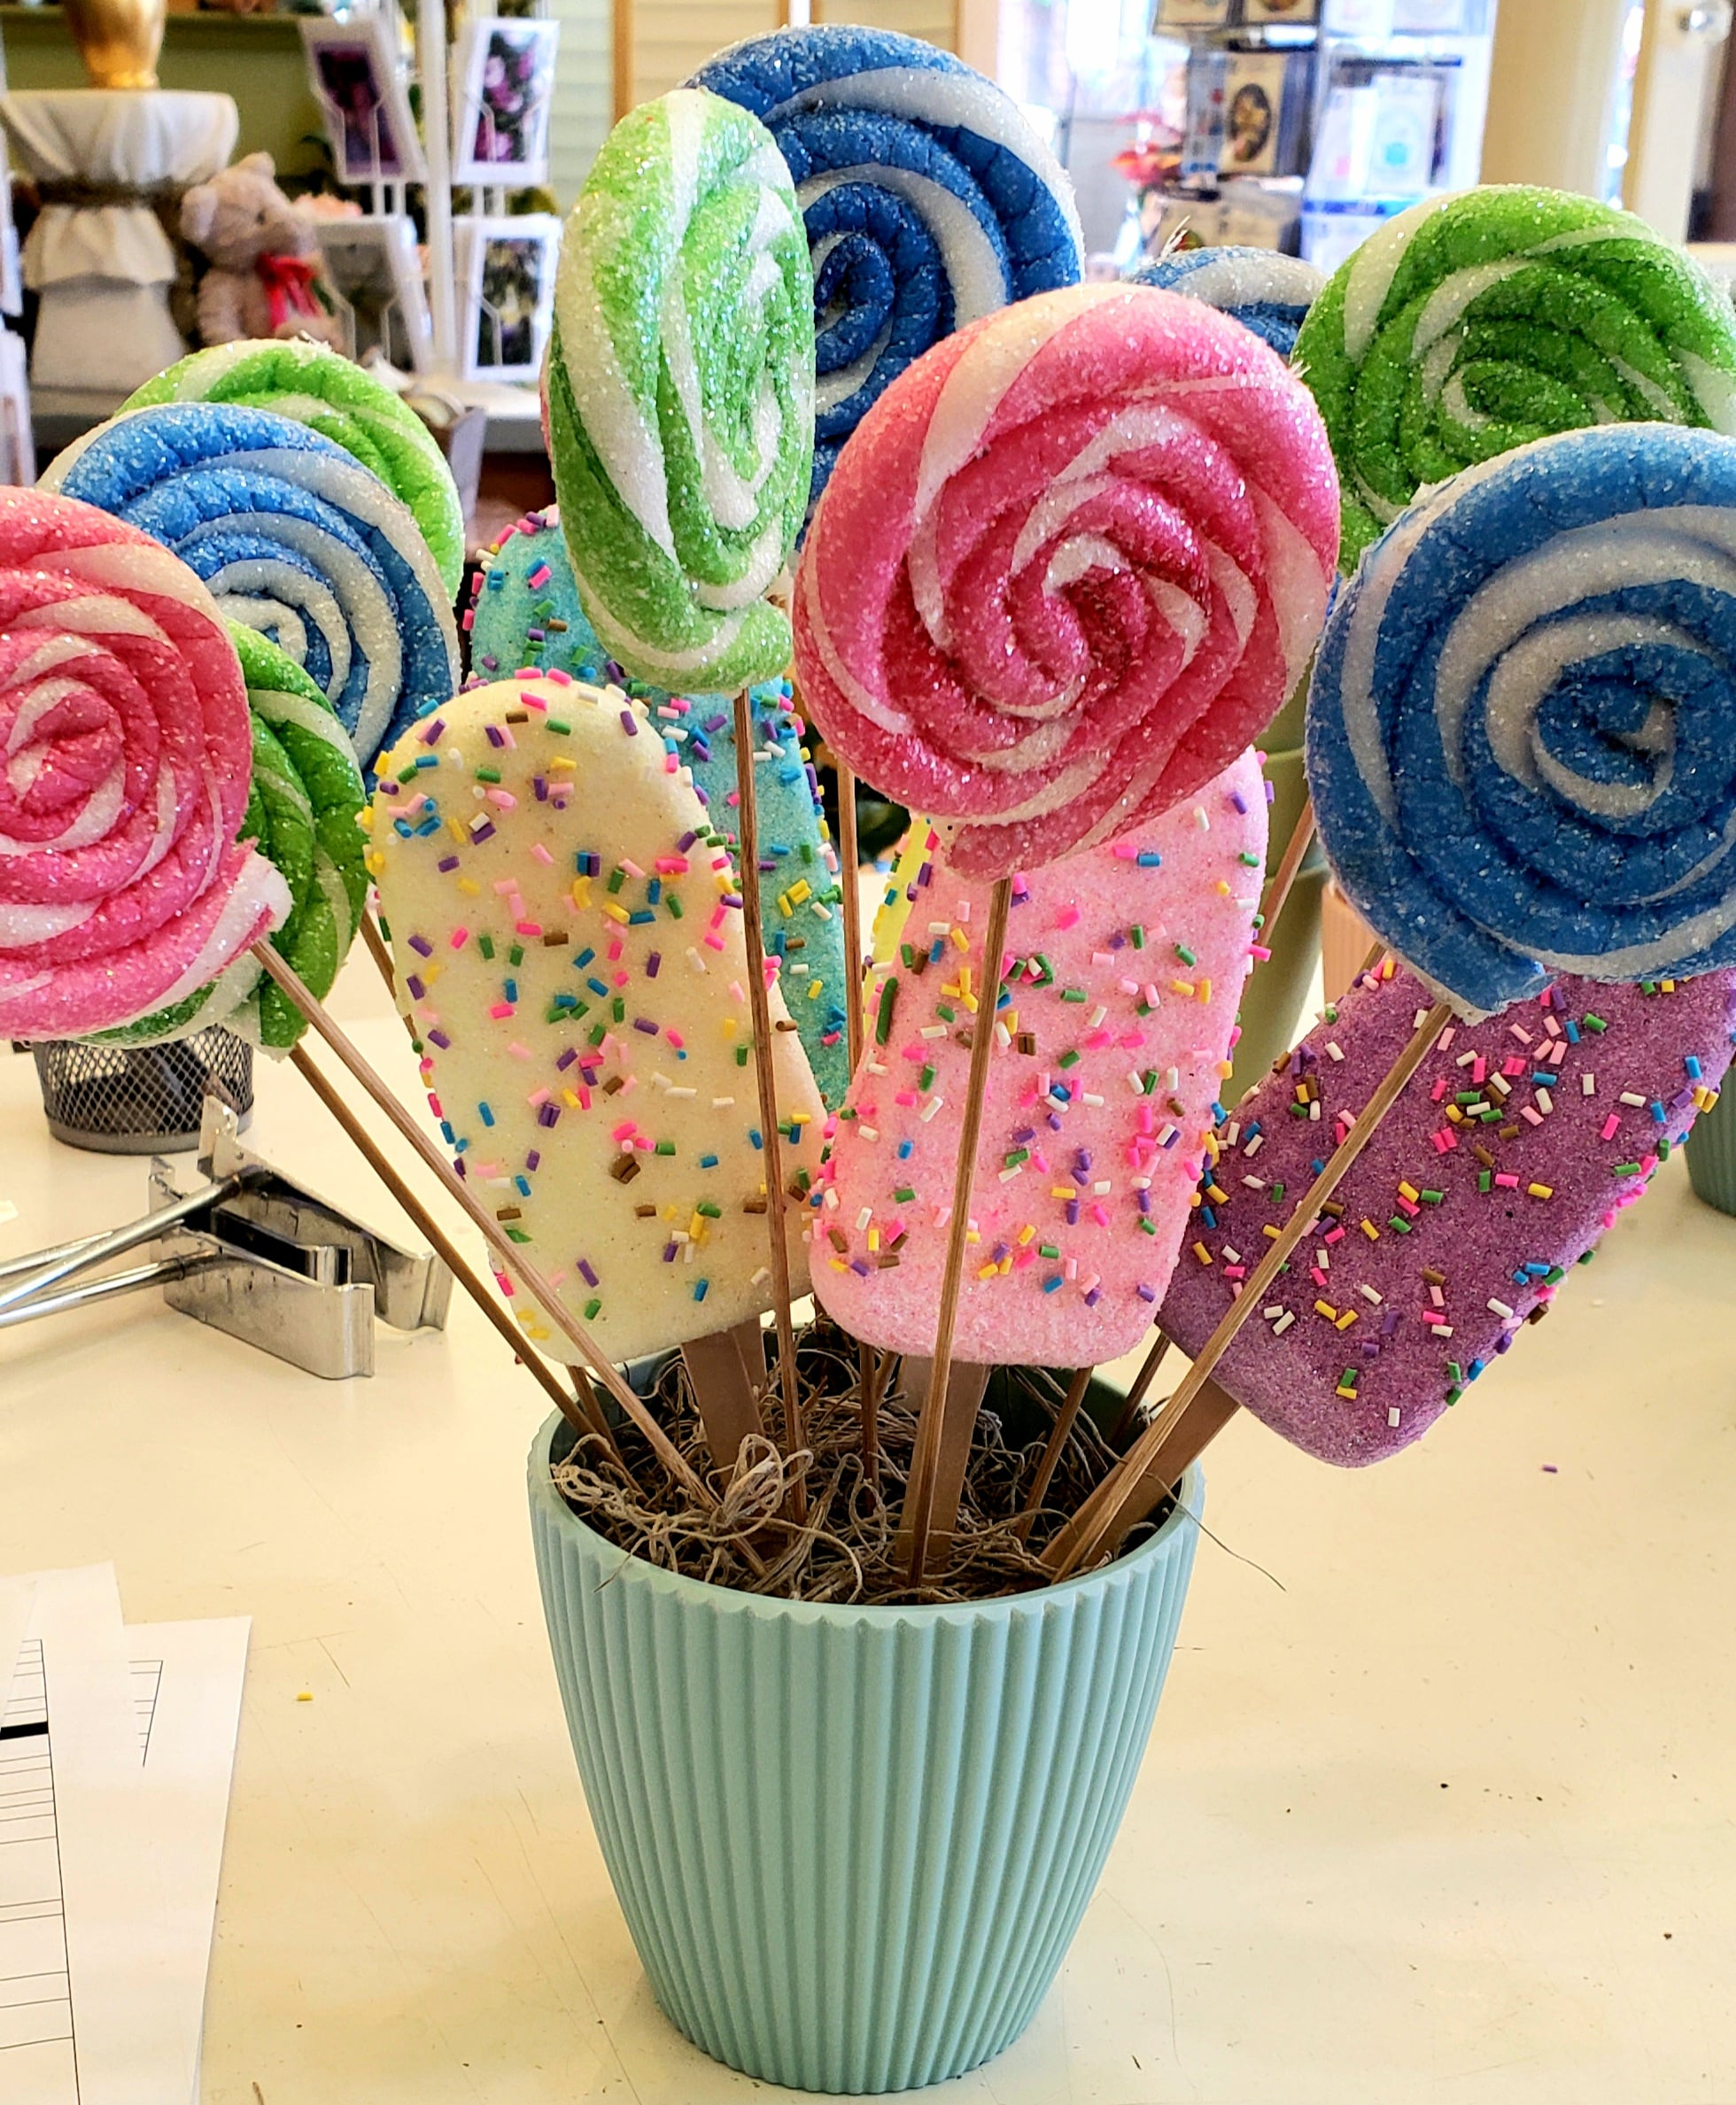 Decorative lollipops and Icecream Bars